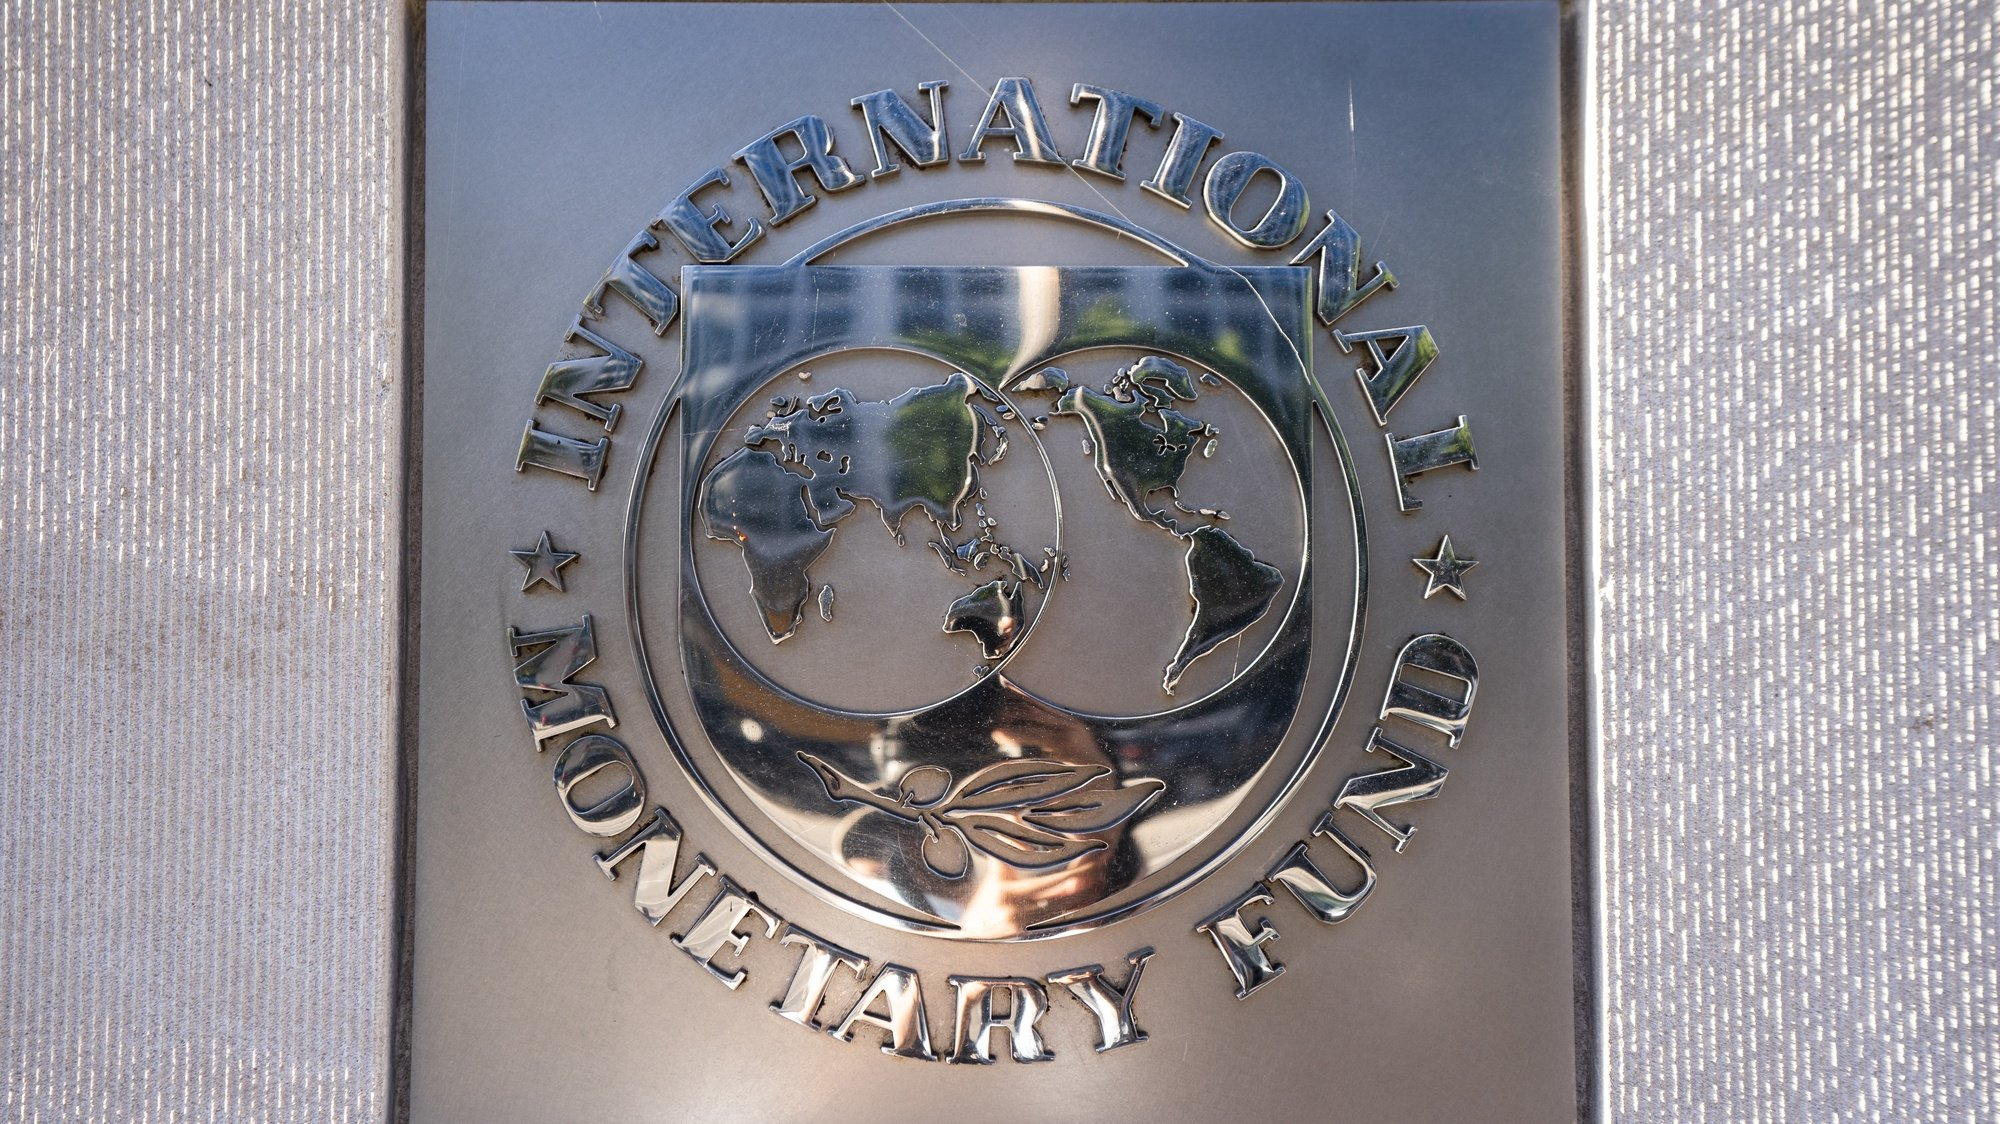 epa08743972 A sign for the International Monetary Fund (IMF) outside its headquarters in Washington, DC, USA, 14 October 2020. The IMF World Bank Group 2020 annual fall meeting has gone virtual due to the Coronavirus pandemic.  EPA/JIM LO SCALZO